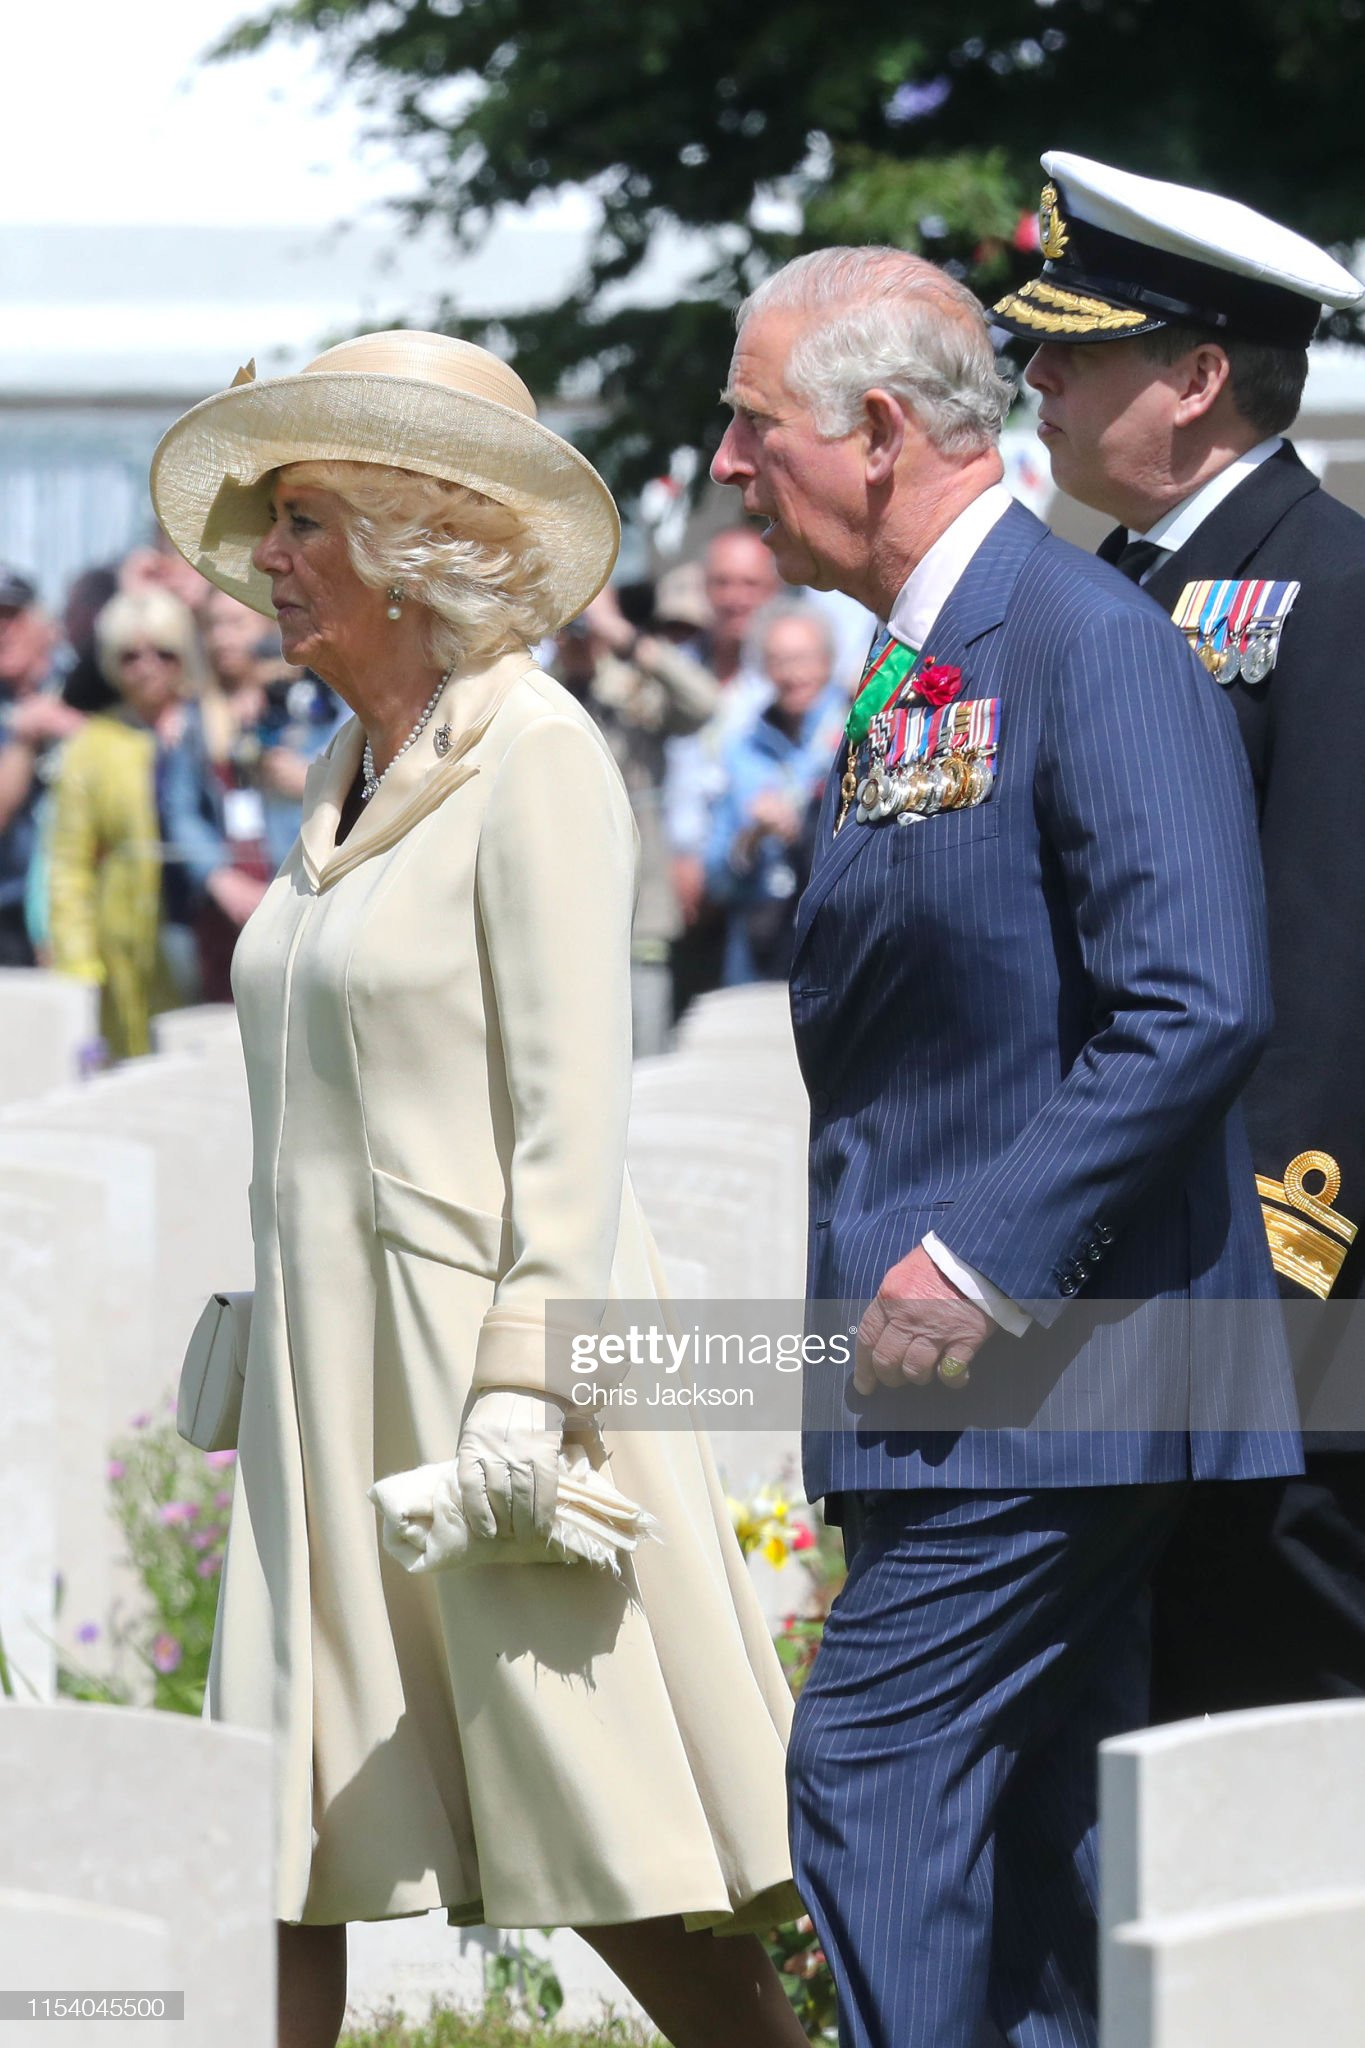 prince-charles-prince-of-wales-and-camilla-duchess-of-cornwall-attend-picture-id1154045500